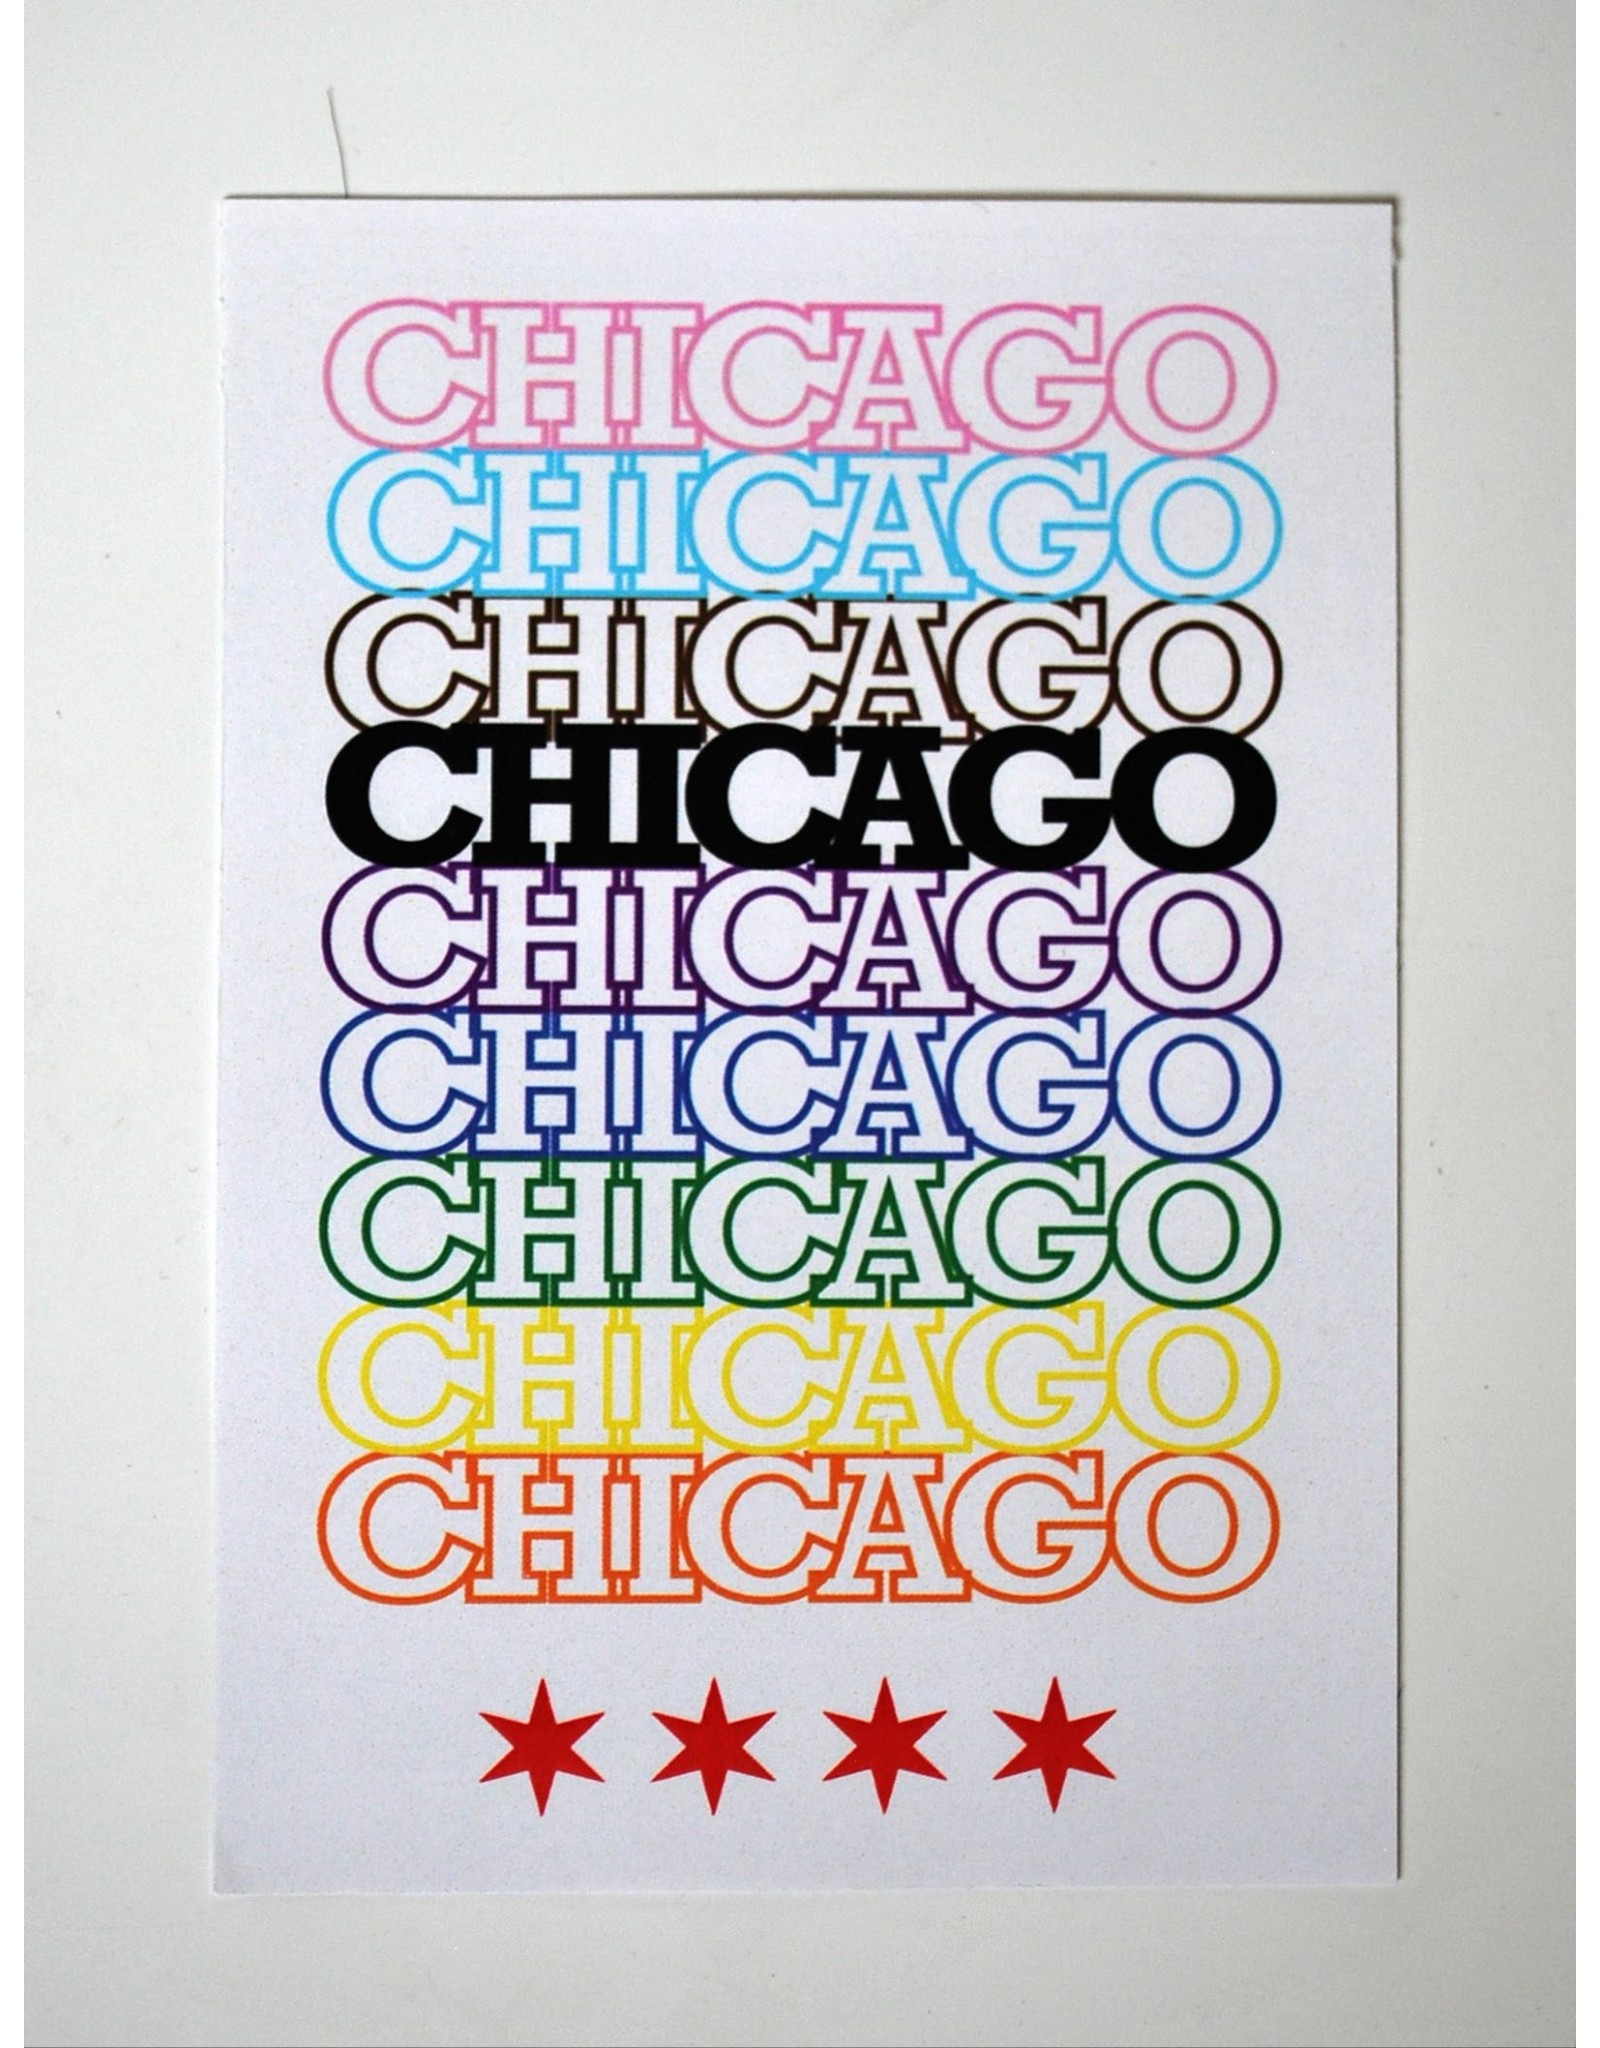 Knight Illustrations Corvus Press: Chicago Peace Recyclable Sticker by David Knight